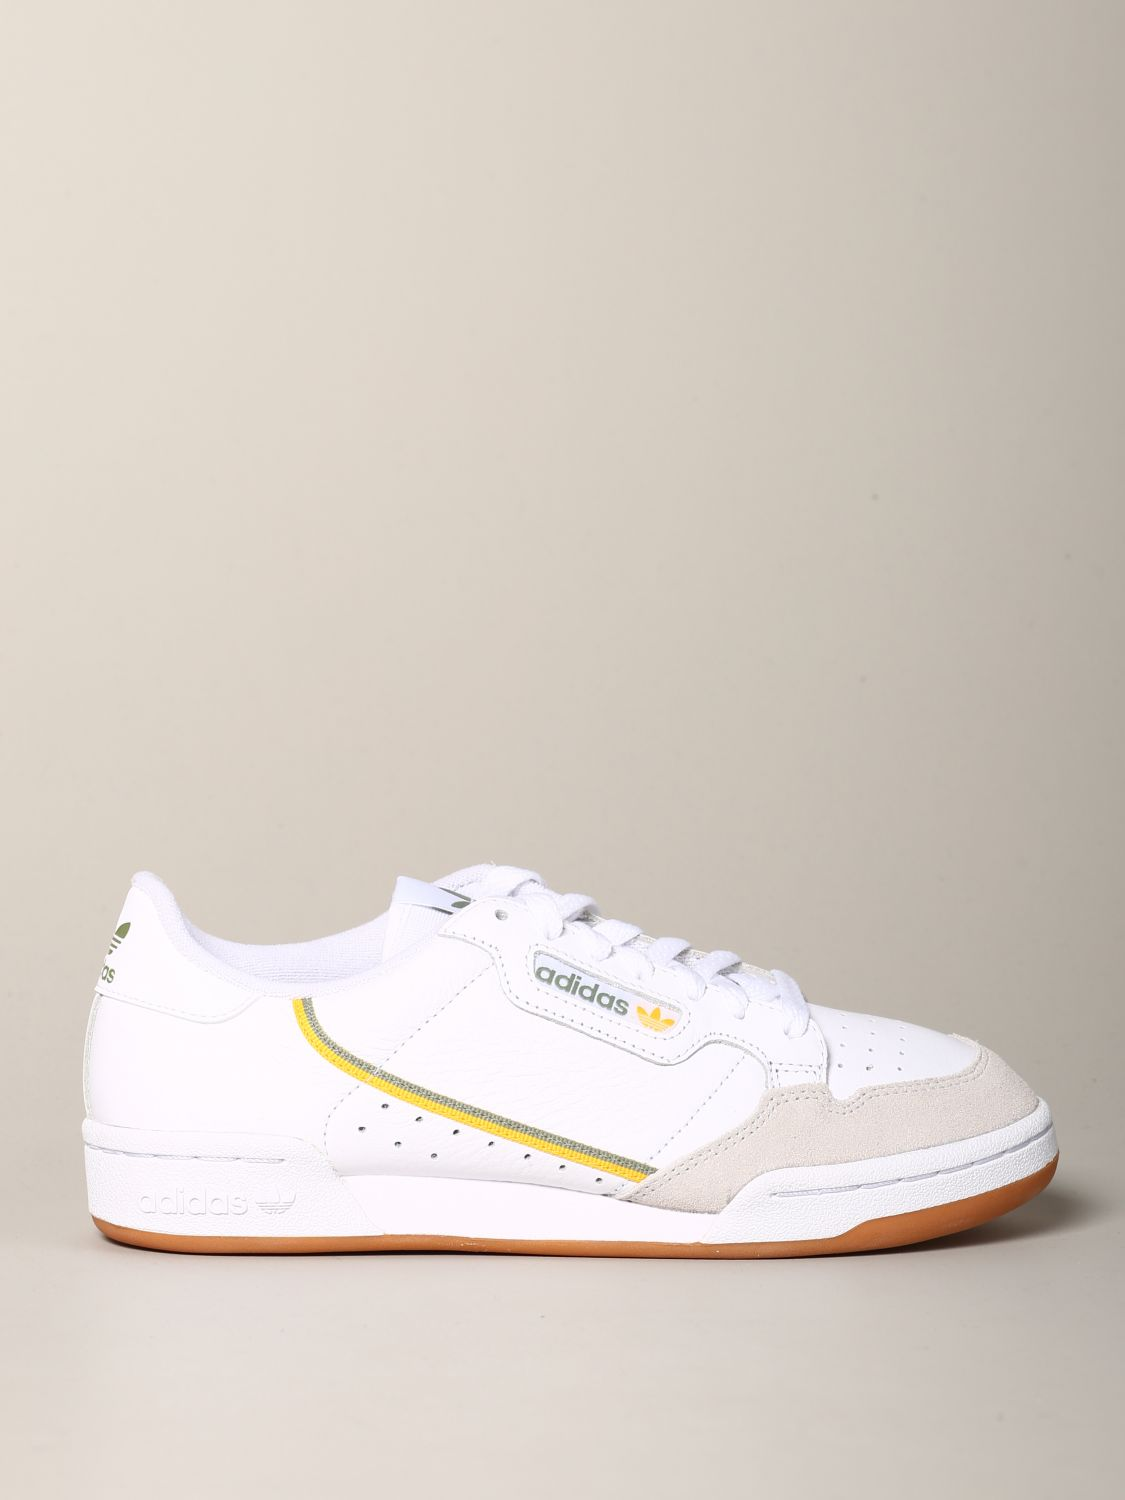 Sneakers Adidas Originals: Adidas Originals Continental 80 sneakers in leather and suede white 1